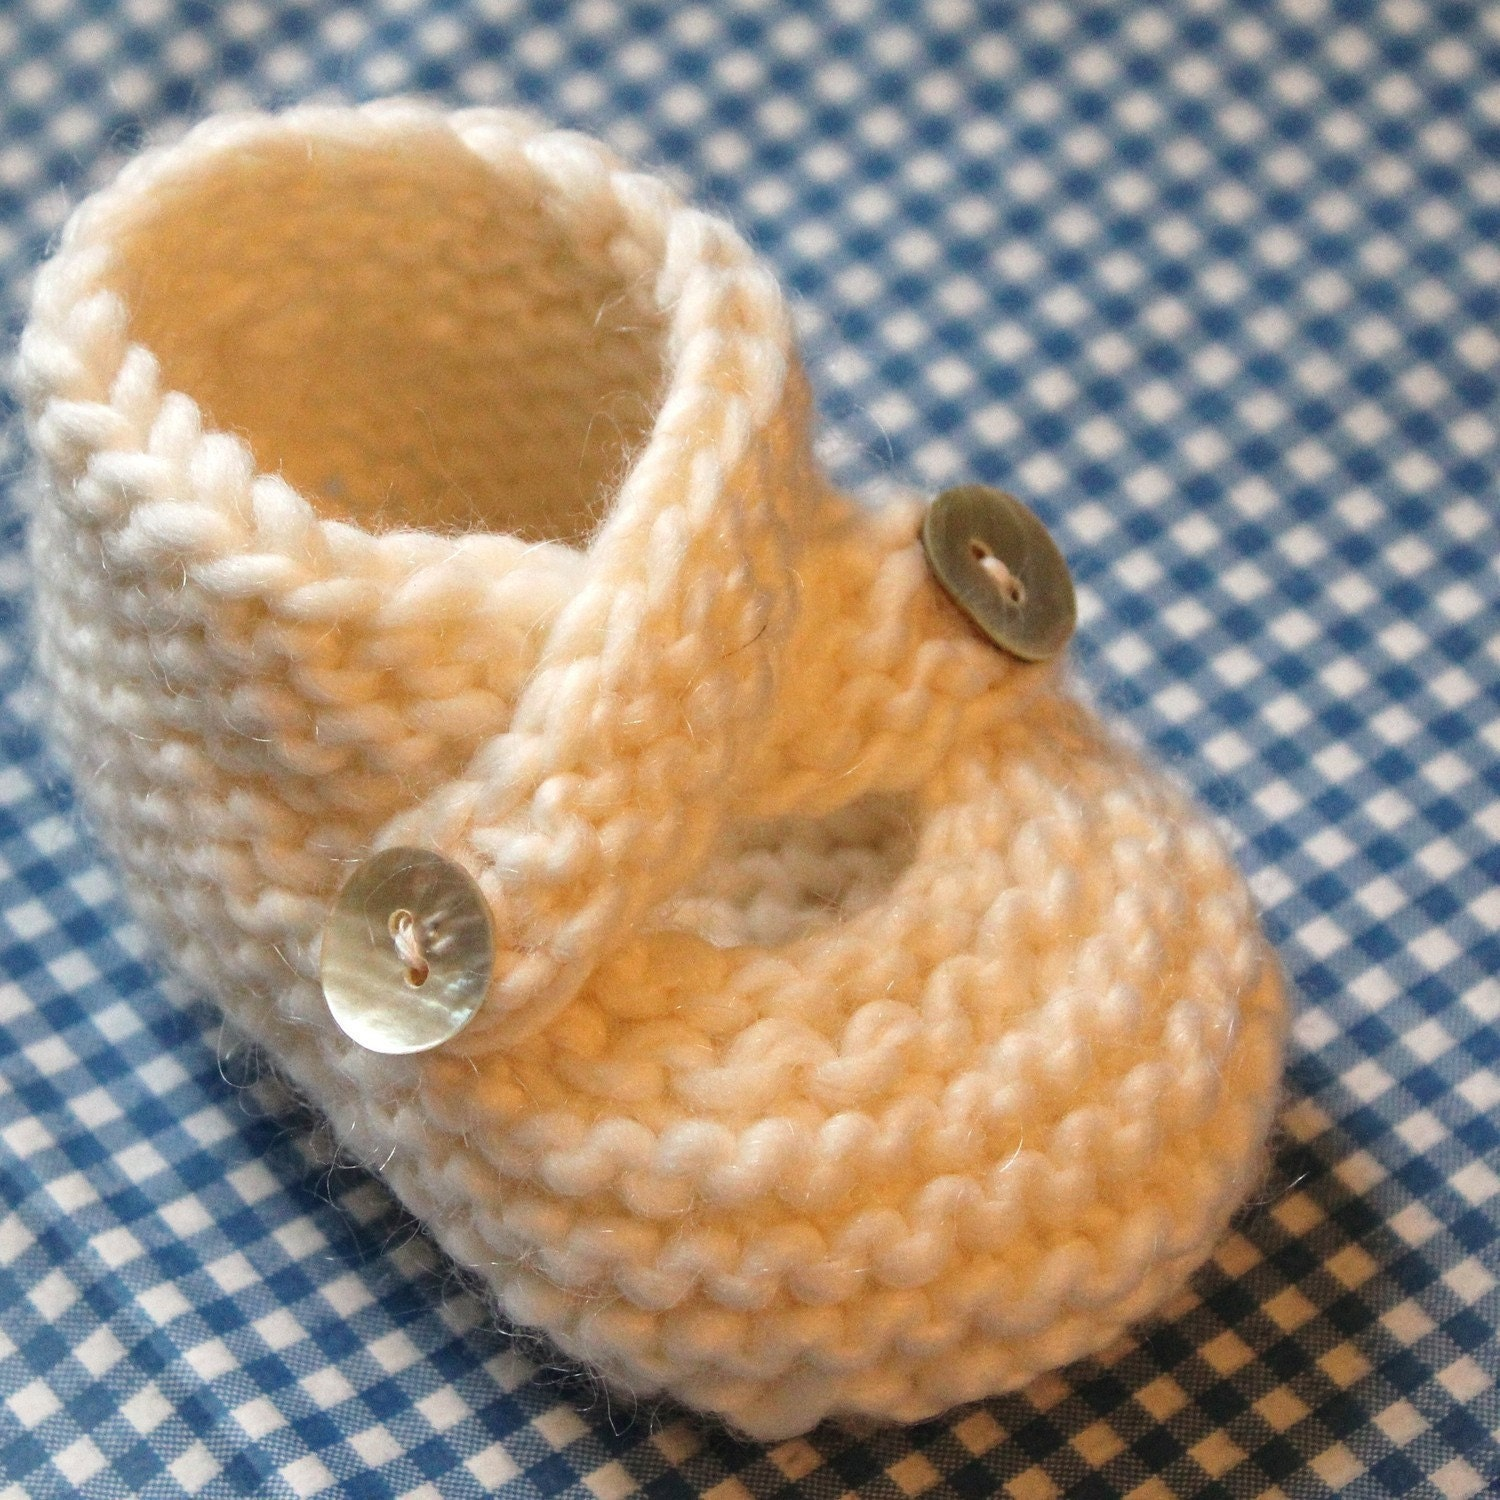 Knitting Baby Booties Patterns : Pattern baby booties knitting knit stitch only three